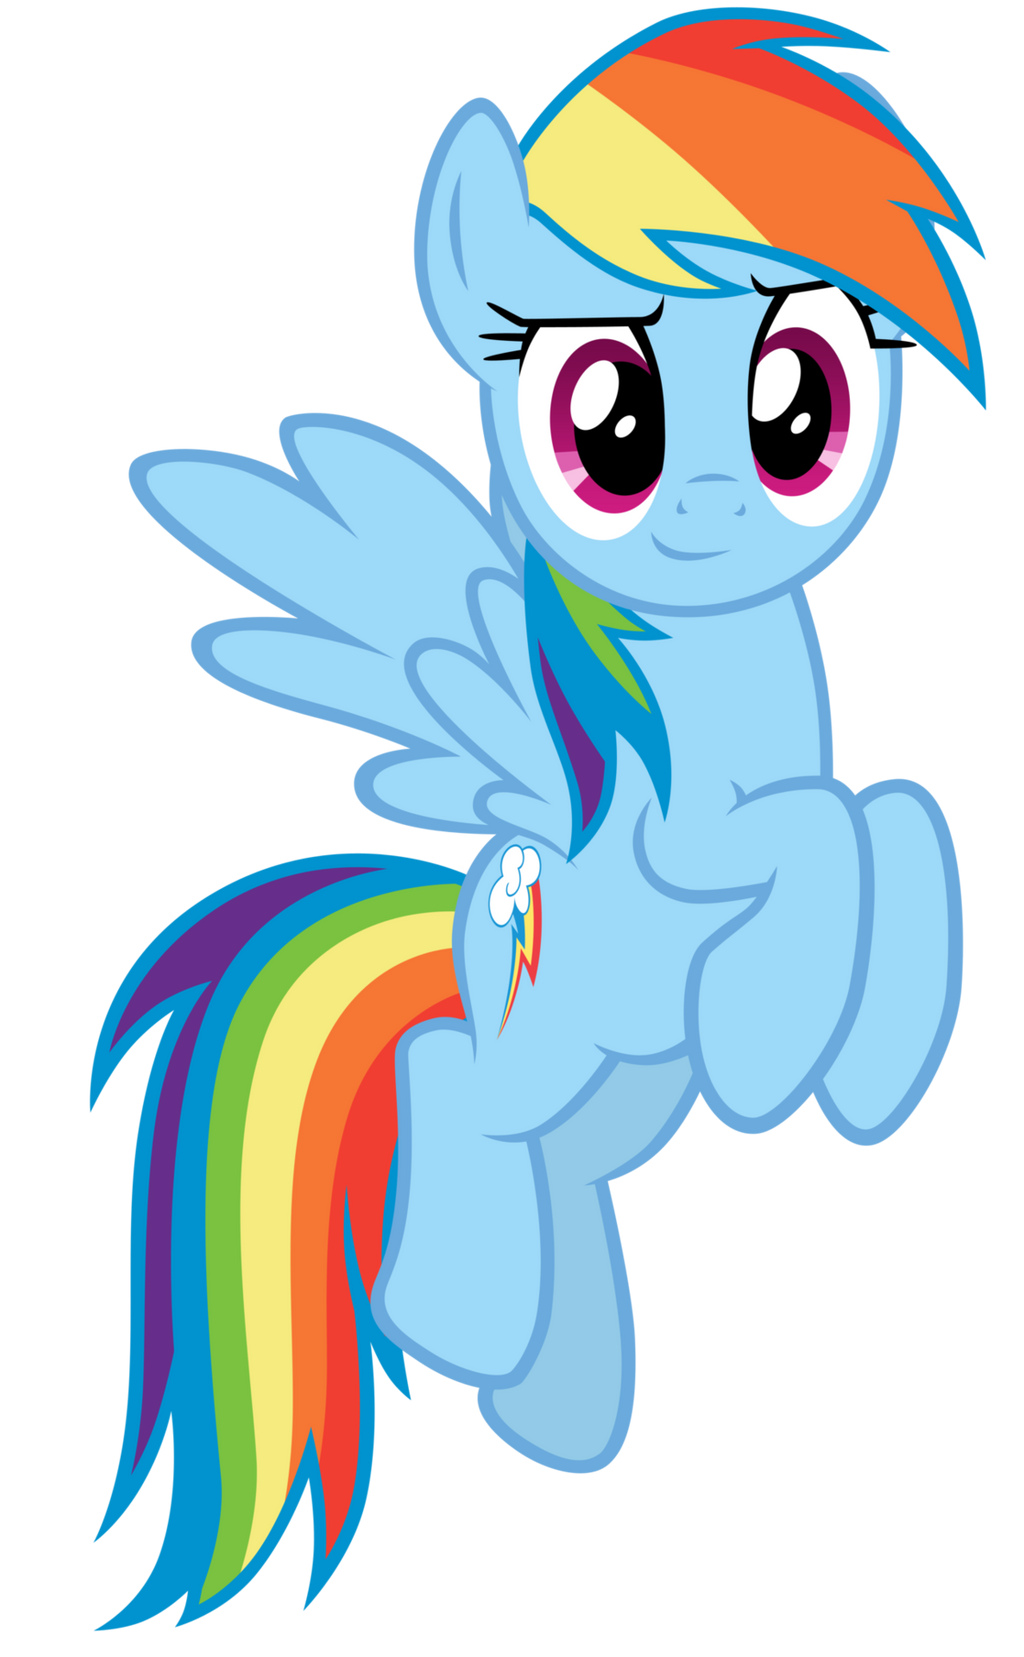 Rainbow Dash - Rainbowfied from Group Shot by CaliAzian on